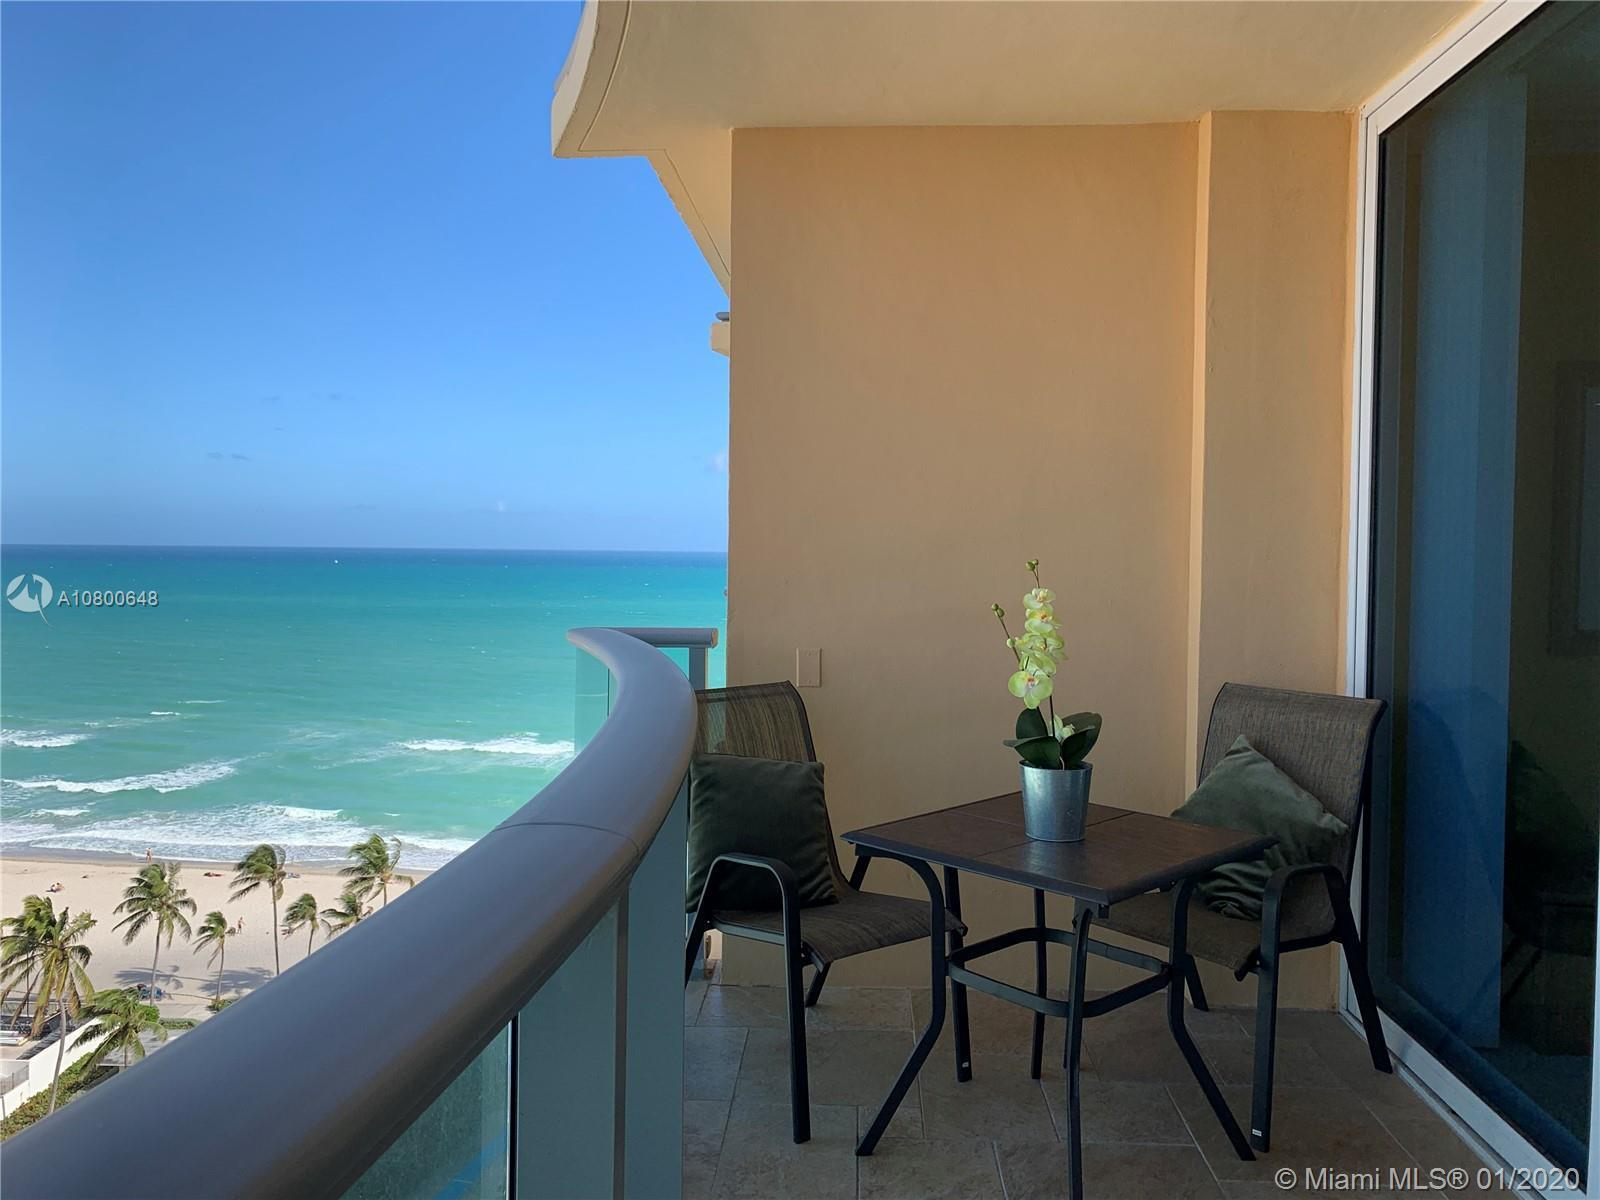 Enjoy spectacular ocean and city views from this fully furnished Studio located on the 16th floor at